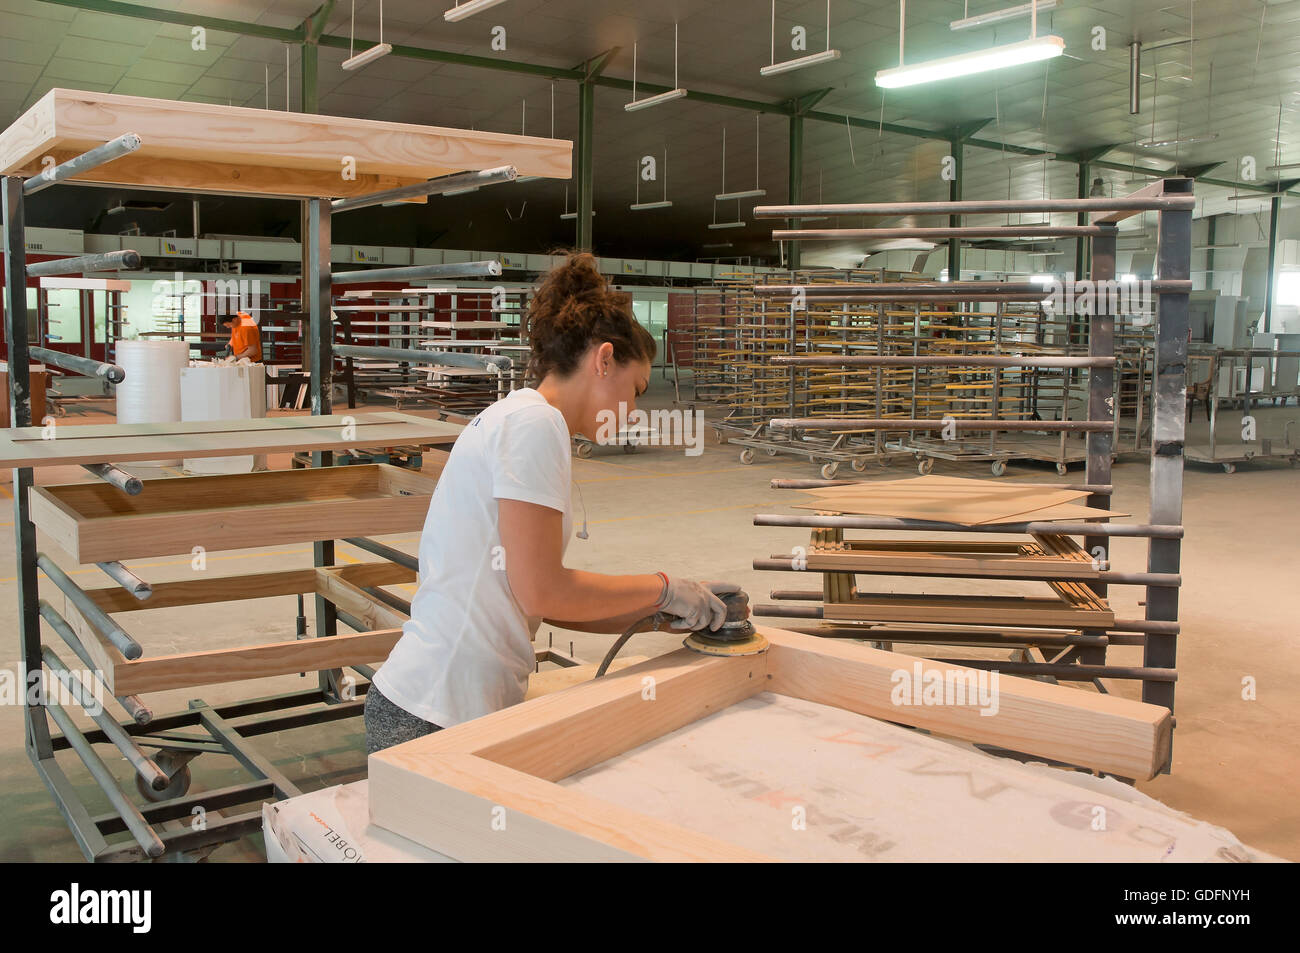 Merveilleux Furniture Factory, Lucena, Cordoba Province, Region Of Andalusia, Spain,  Europe